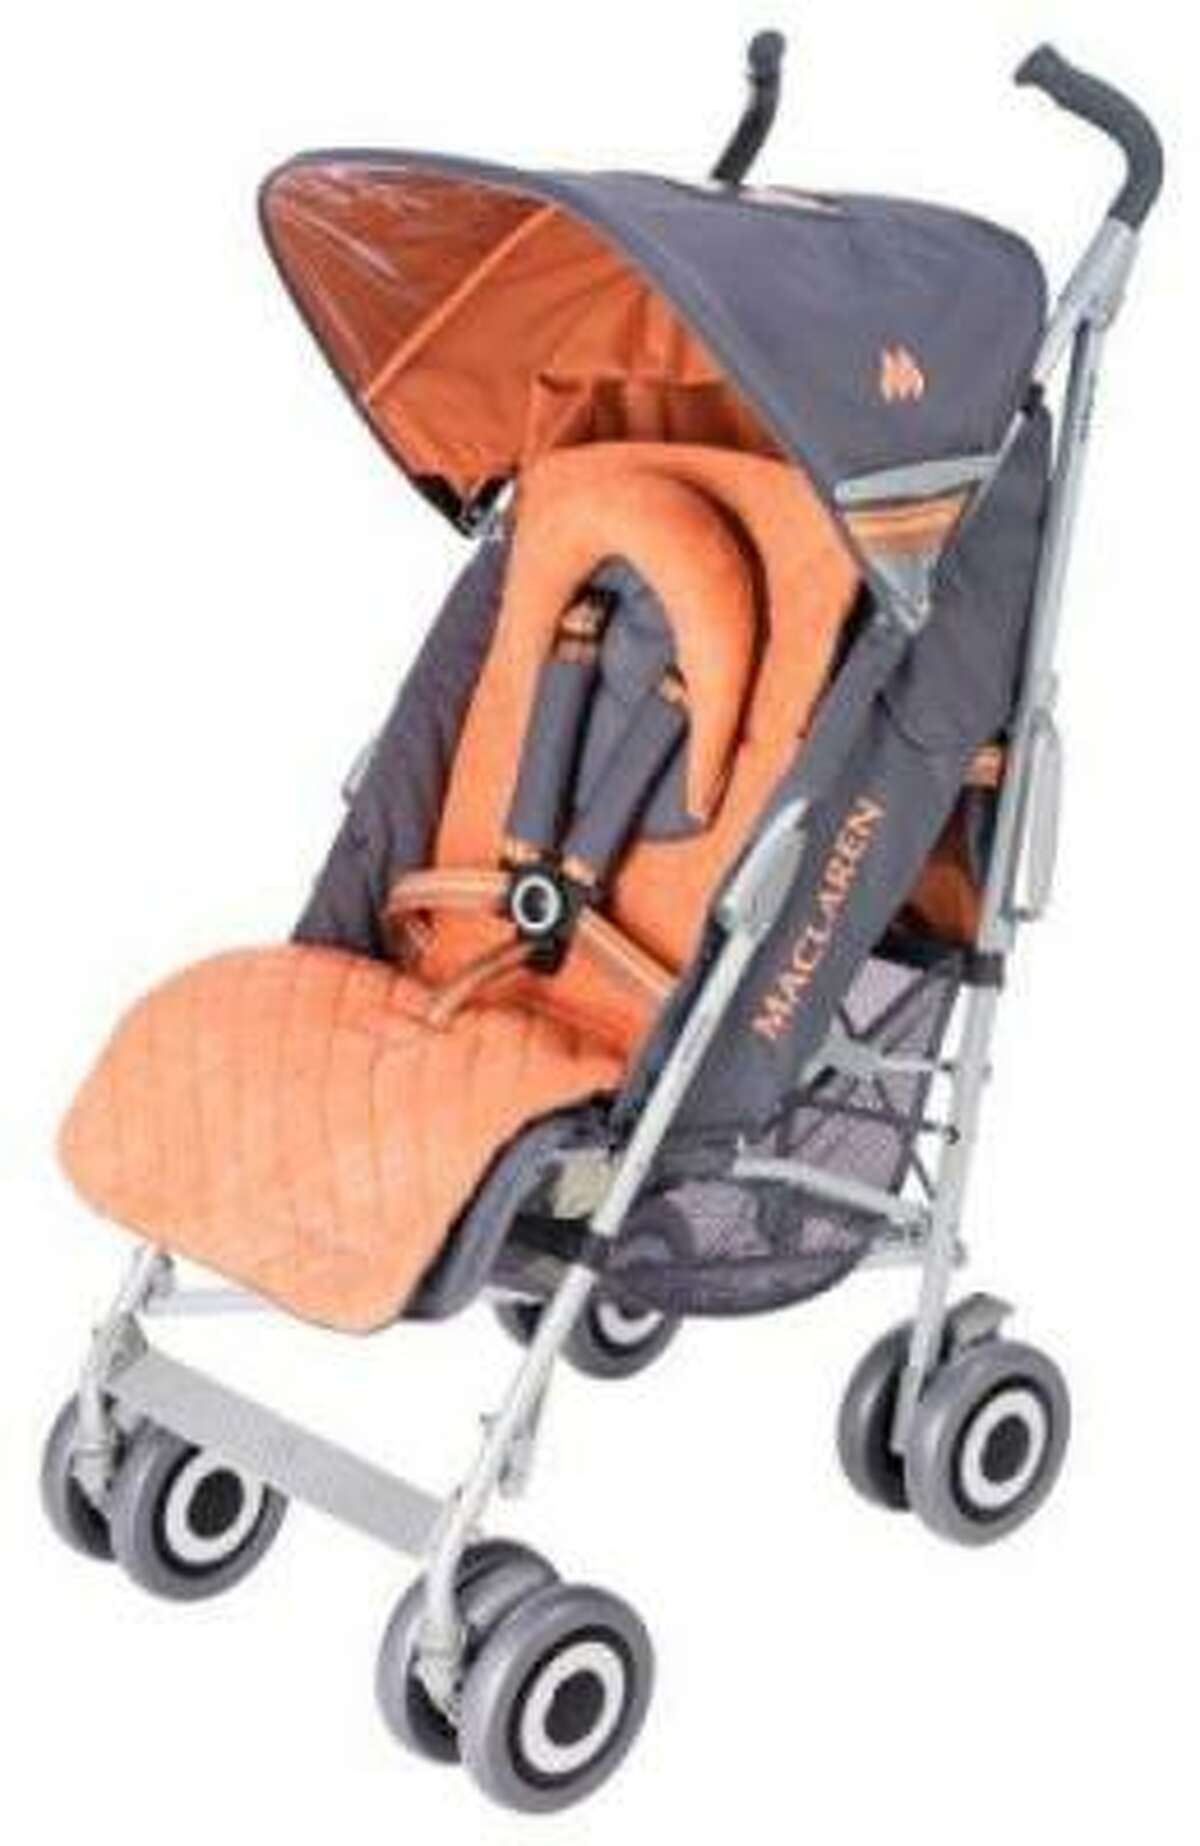 Name of Product: Maclaren Strollers Hazard: The stroller's hinge mechanism poses a fingertip amputation and laceration hazard to the child when the consumer is unfolding/opening the stroller.Description: This recall involves all Maclaren single and double umbrella strollers. The word